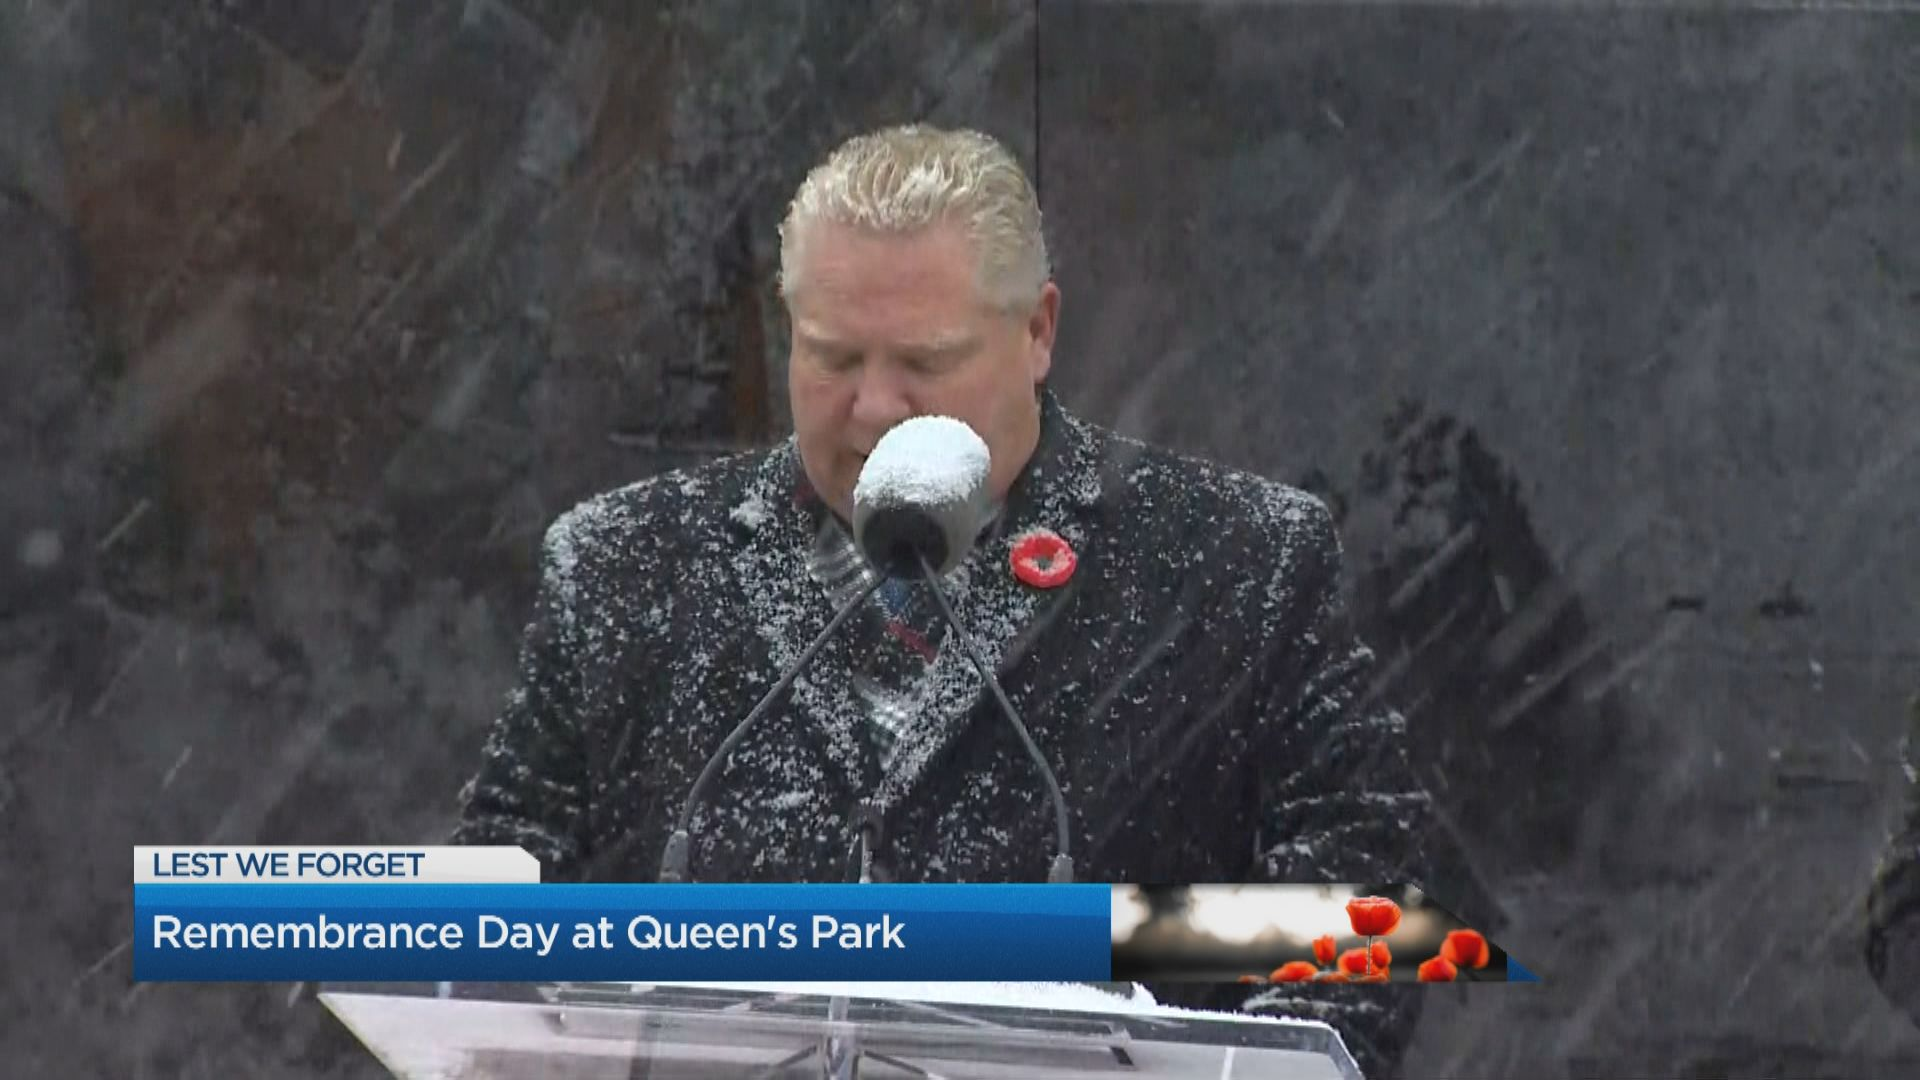 People gather at Queen's Park for Remembrance Day